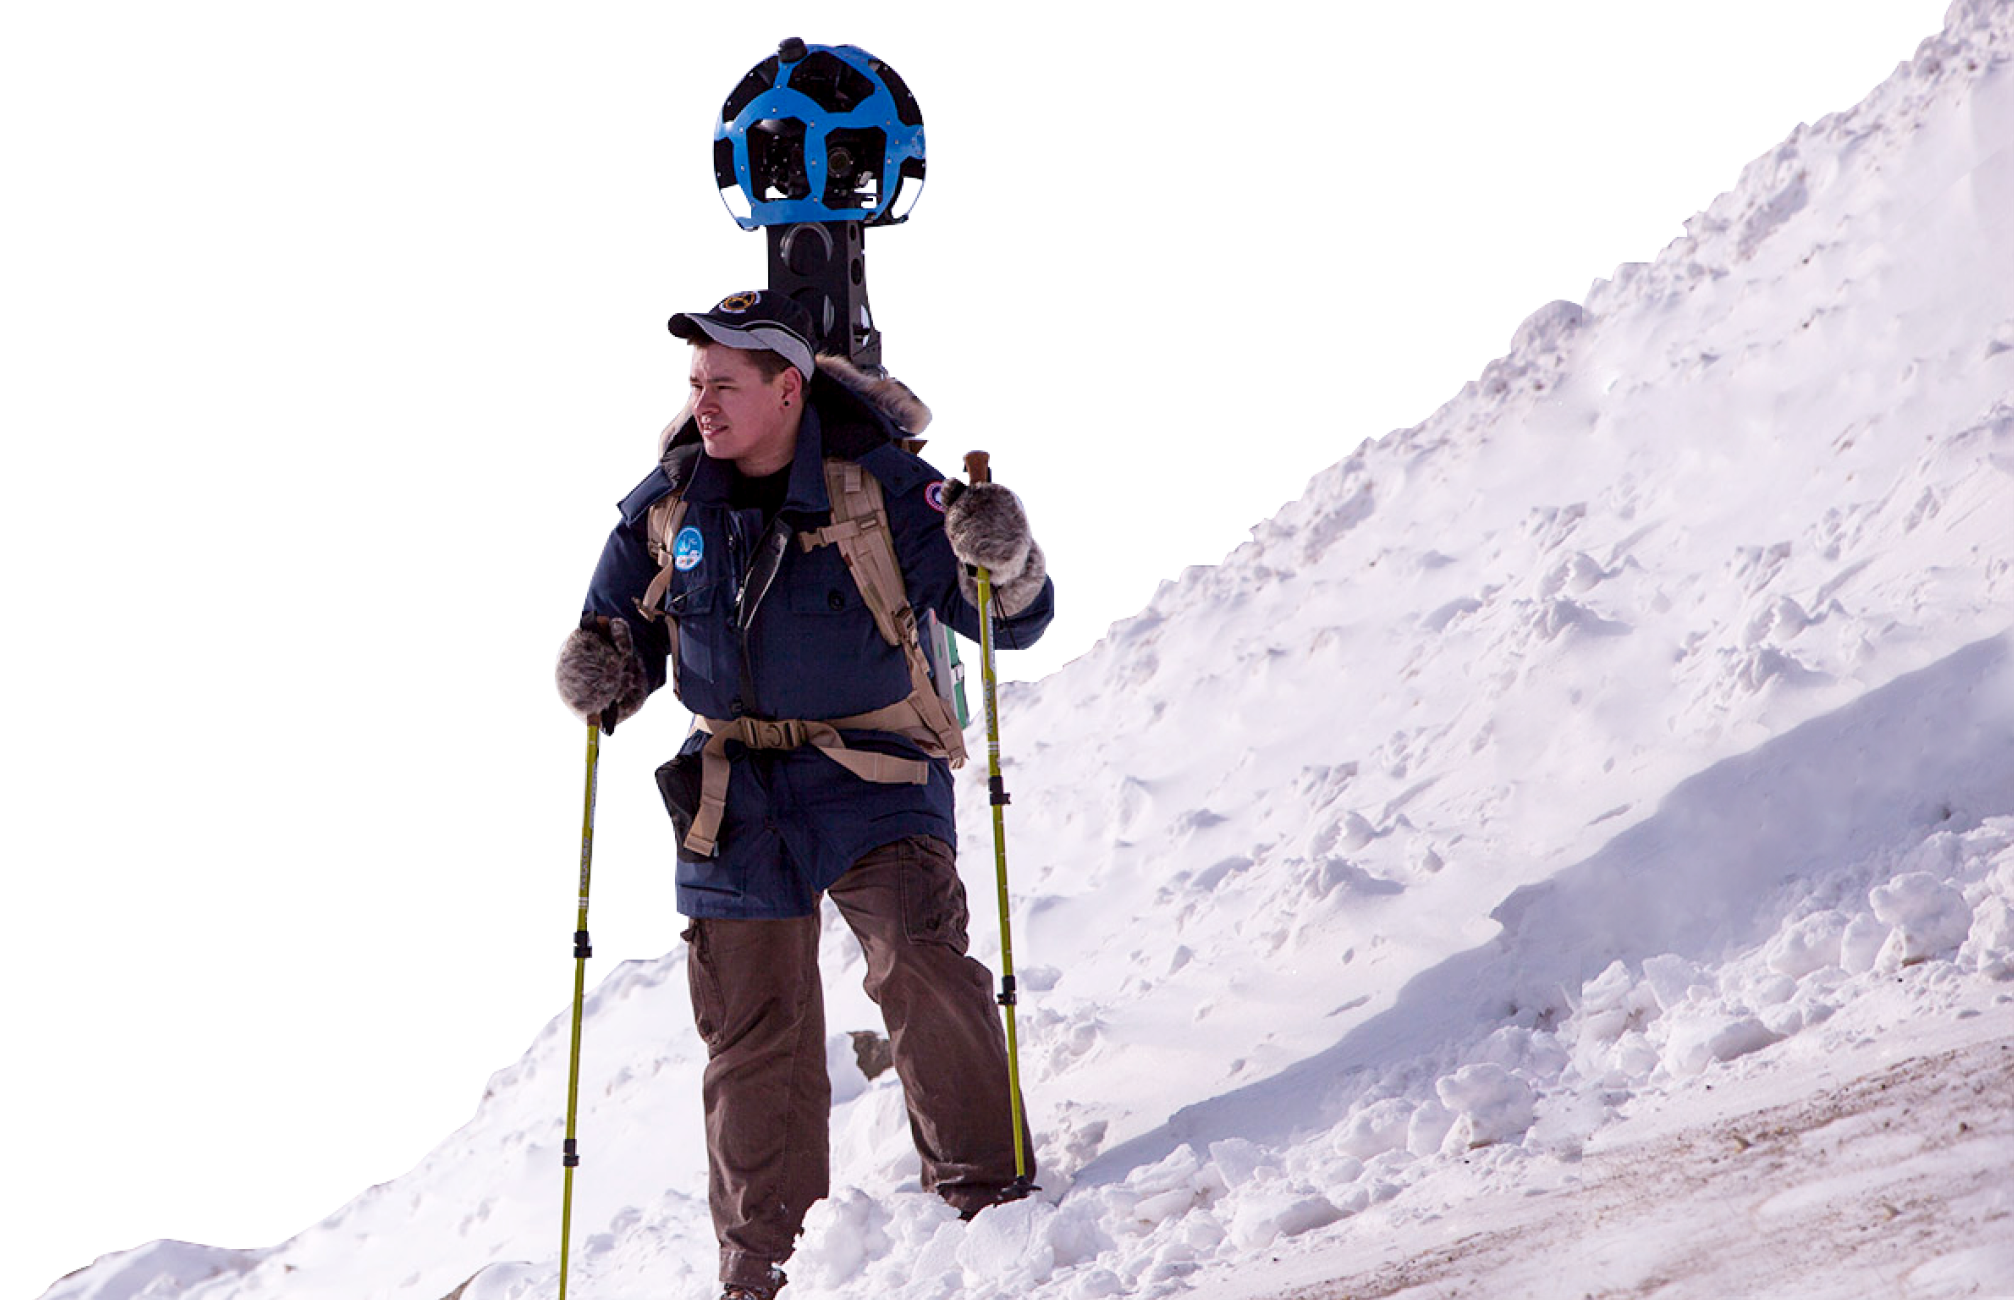 Mountain climber with Google Street View camera on his back